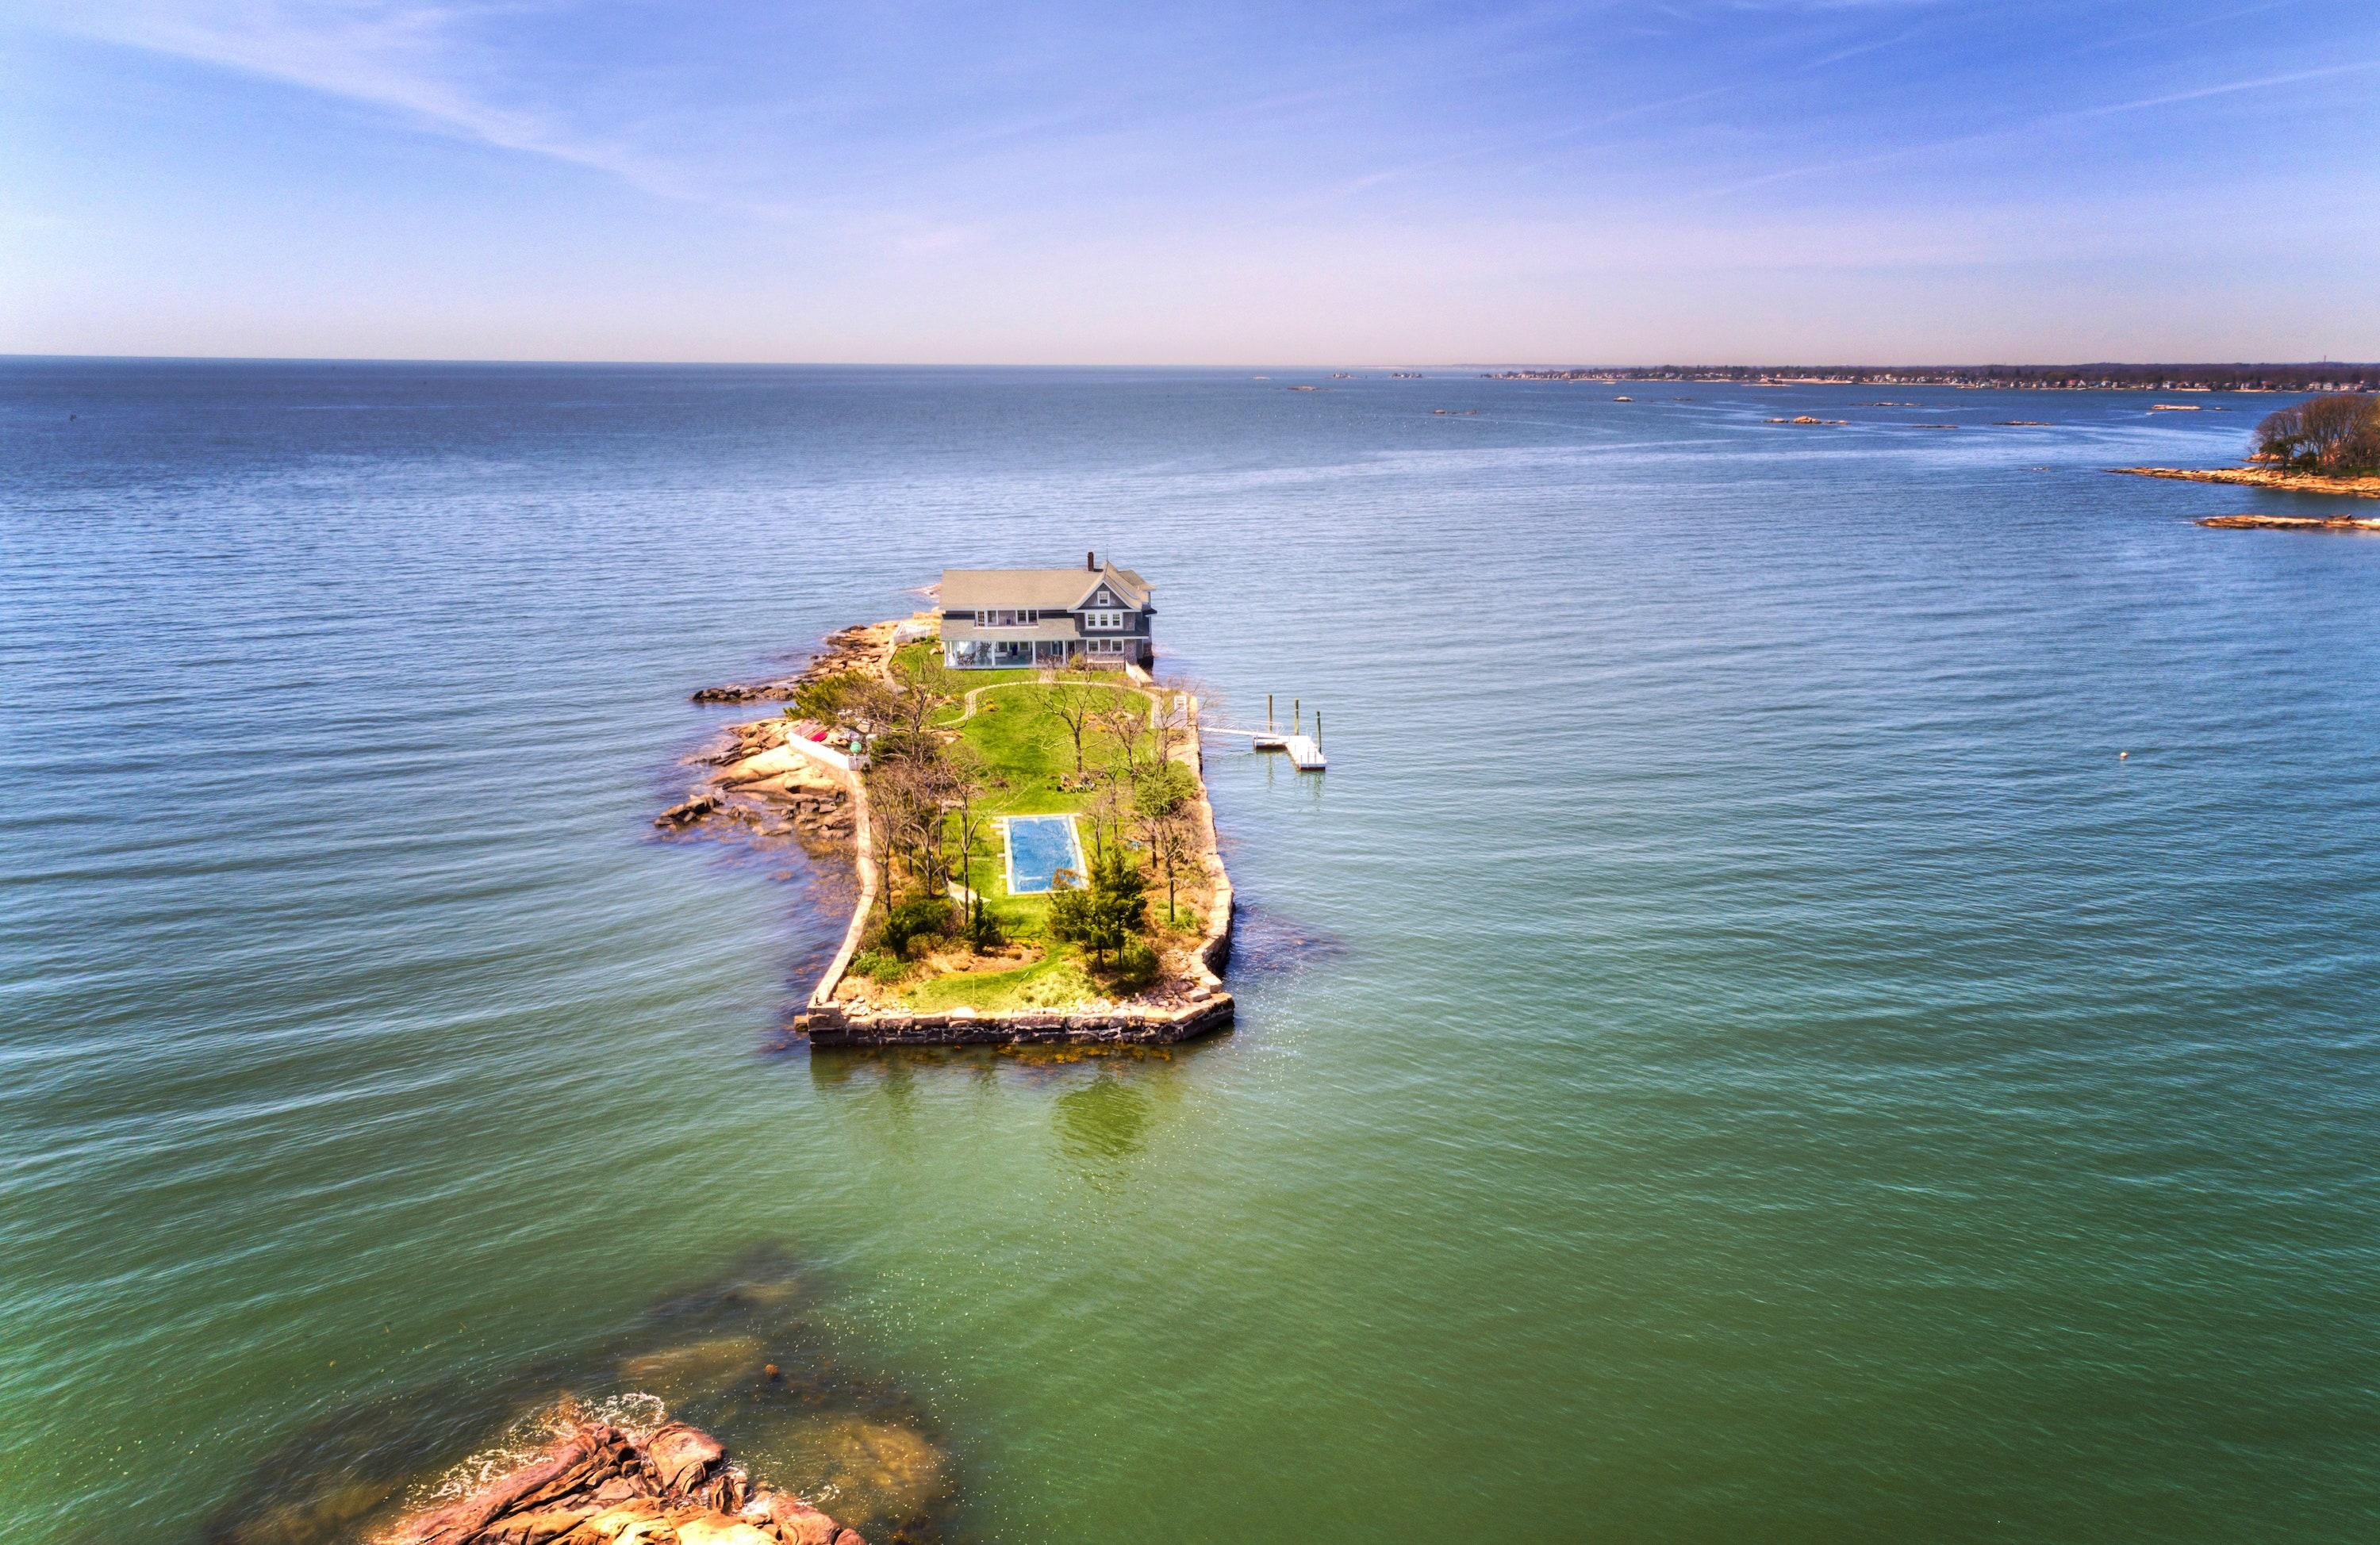 """<a href=""""https://www.christiesrealestate.com/sales/detail/170-l-78183-1805101311556549/0-potato-island-branford-ct-06405"""" rel=""""nofollow noopener"""" target=""""_blank"""" data-ylk=""""slk:Location: Potato Island, Branford, Connecticut"""" class=""""link rapid-noclick-resp"""">Location: Potato Island, Branford, Connecticut</a><br> Price: $4,900,000<br> Bed/Baths: 4 bedrooms; 3 full and 1 partial bathrooms<br> Interior Square Footage: 3,871<br> Lot Size: 1.1 acres"""